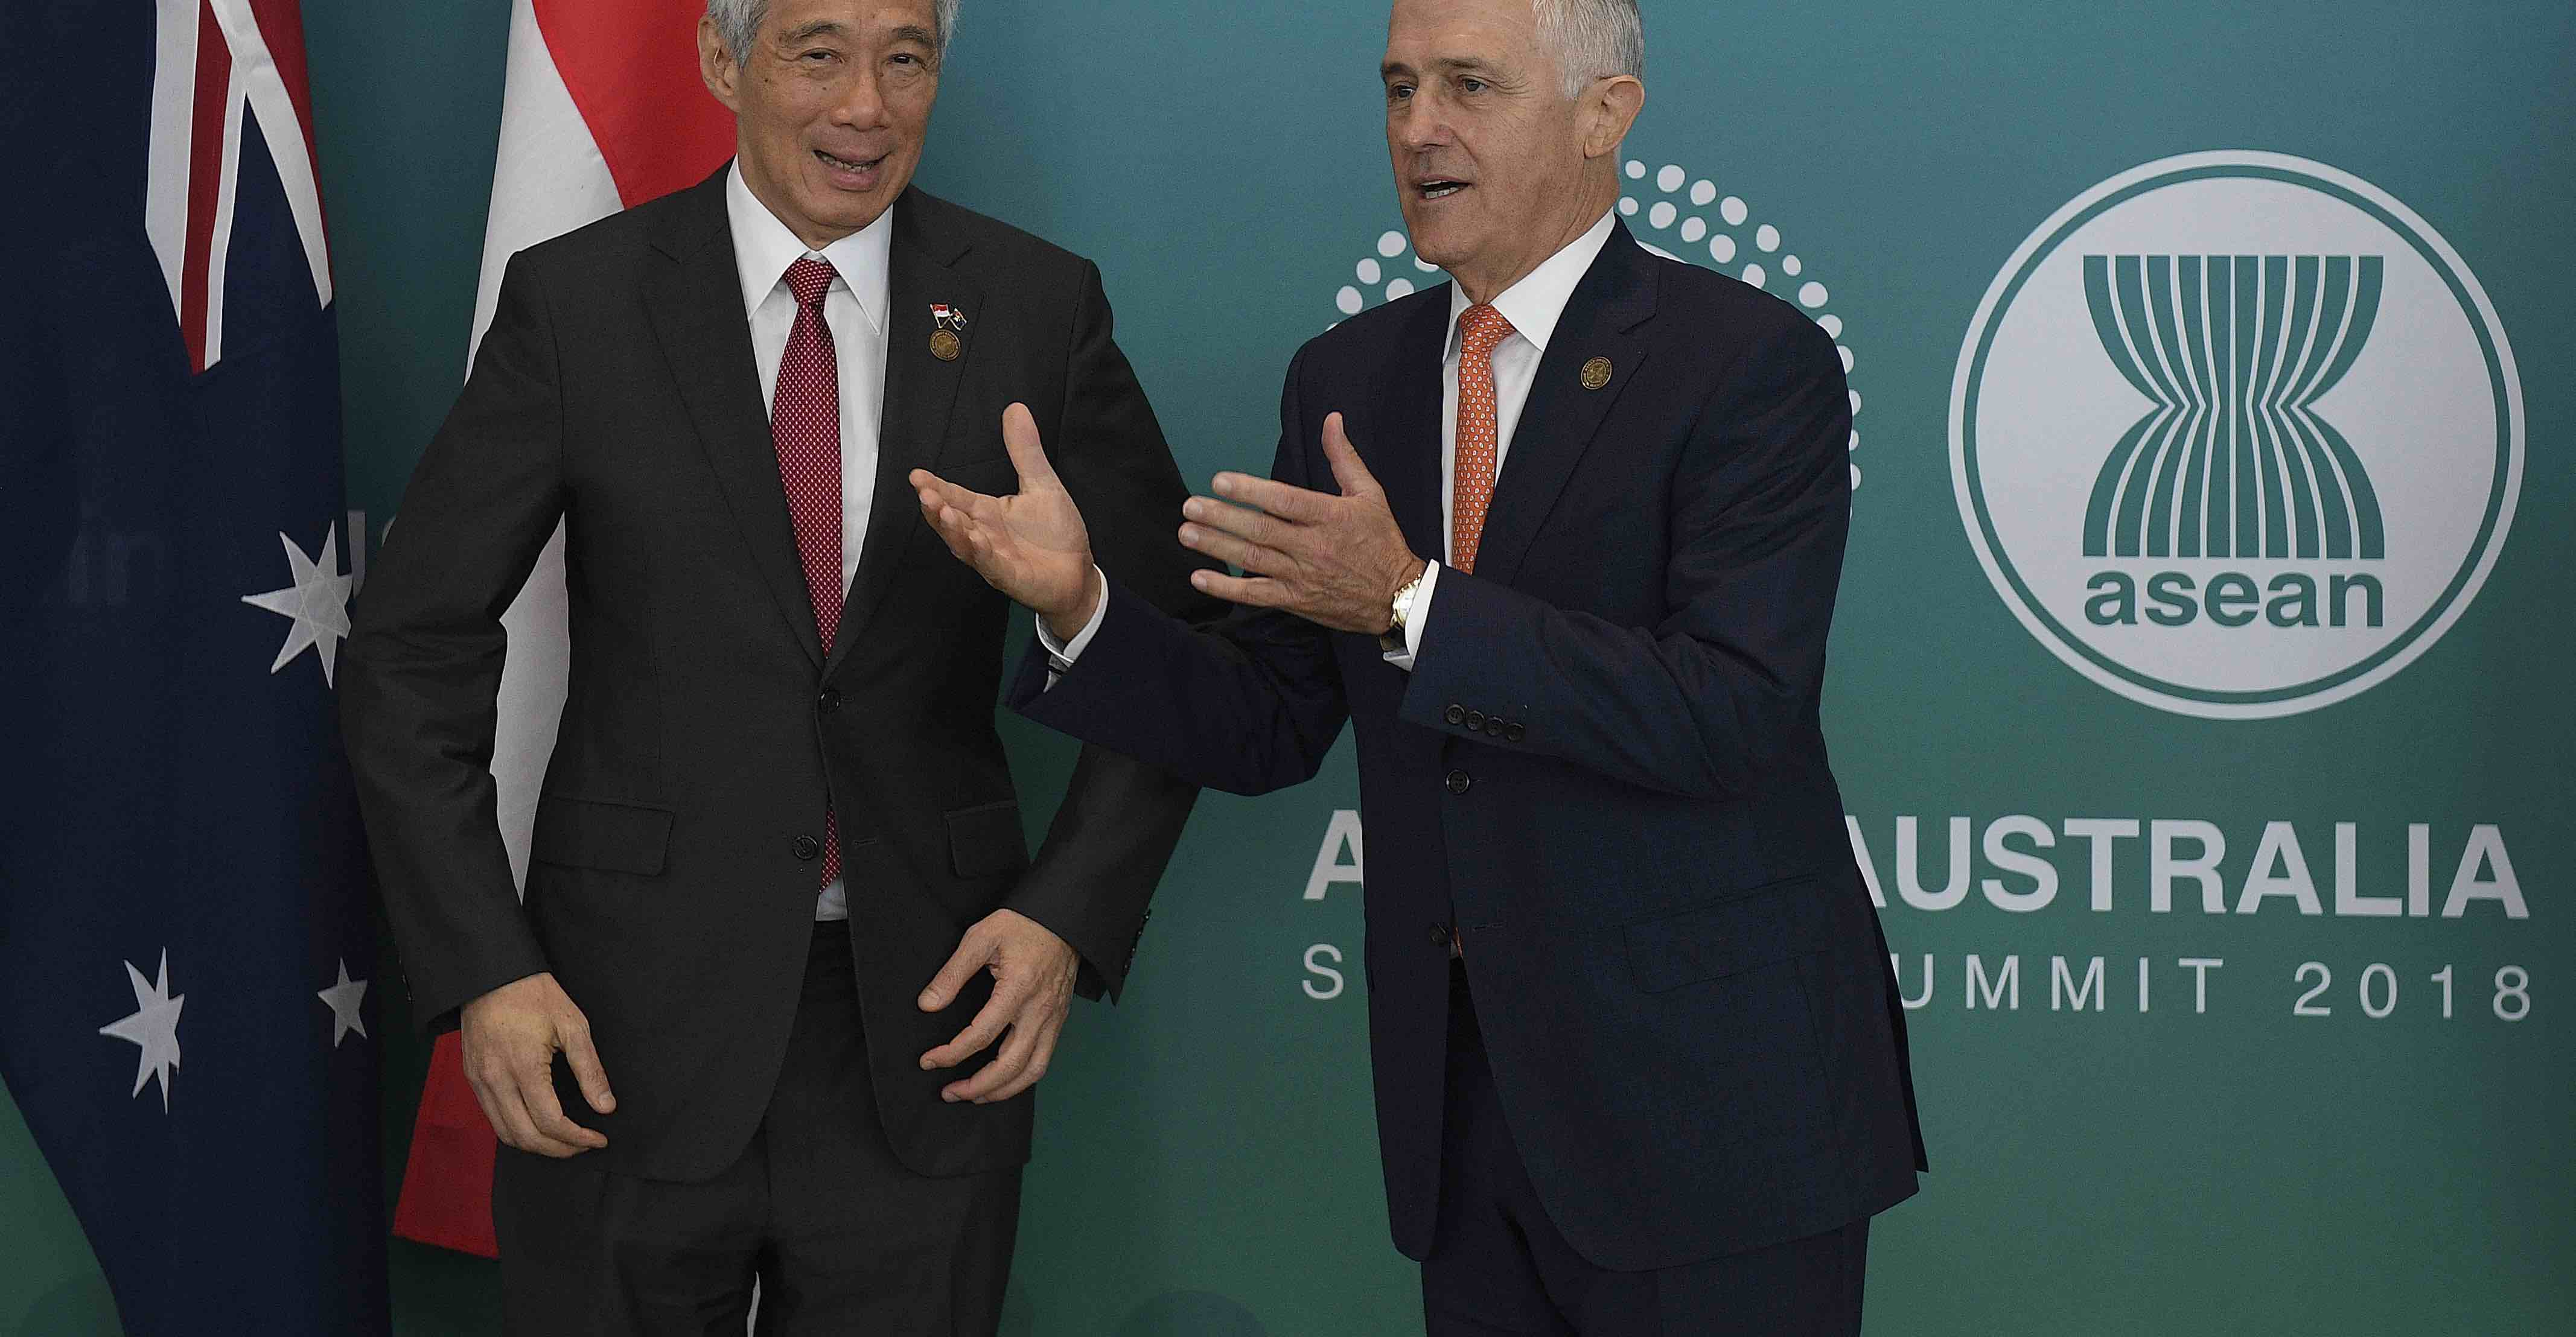 Malcolm Turnbull welcomes Singapore's Lee Hsien Loong on Friday ahead of the Australia-ASEAN summit (Photo by Dan Himbrechts-Pool/Getty)